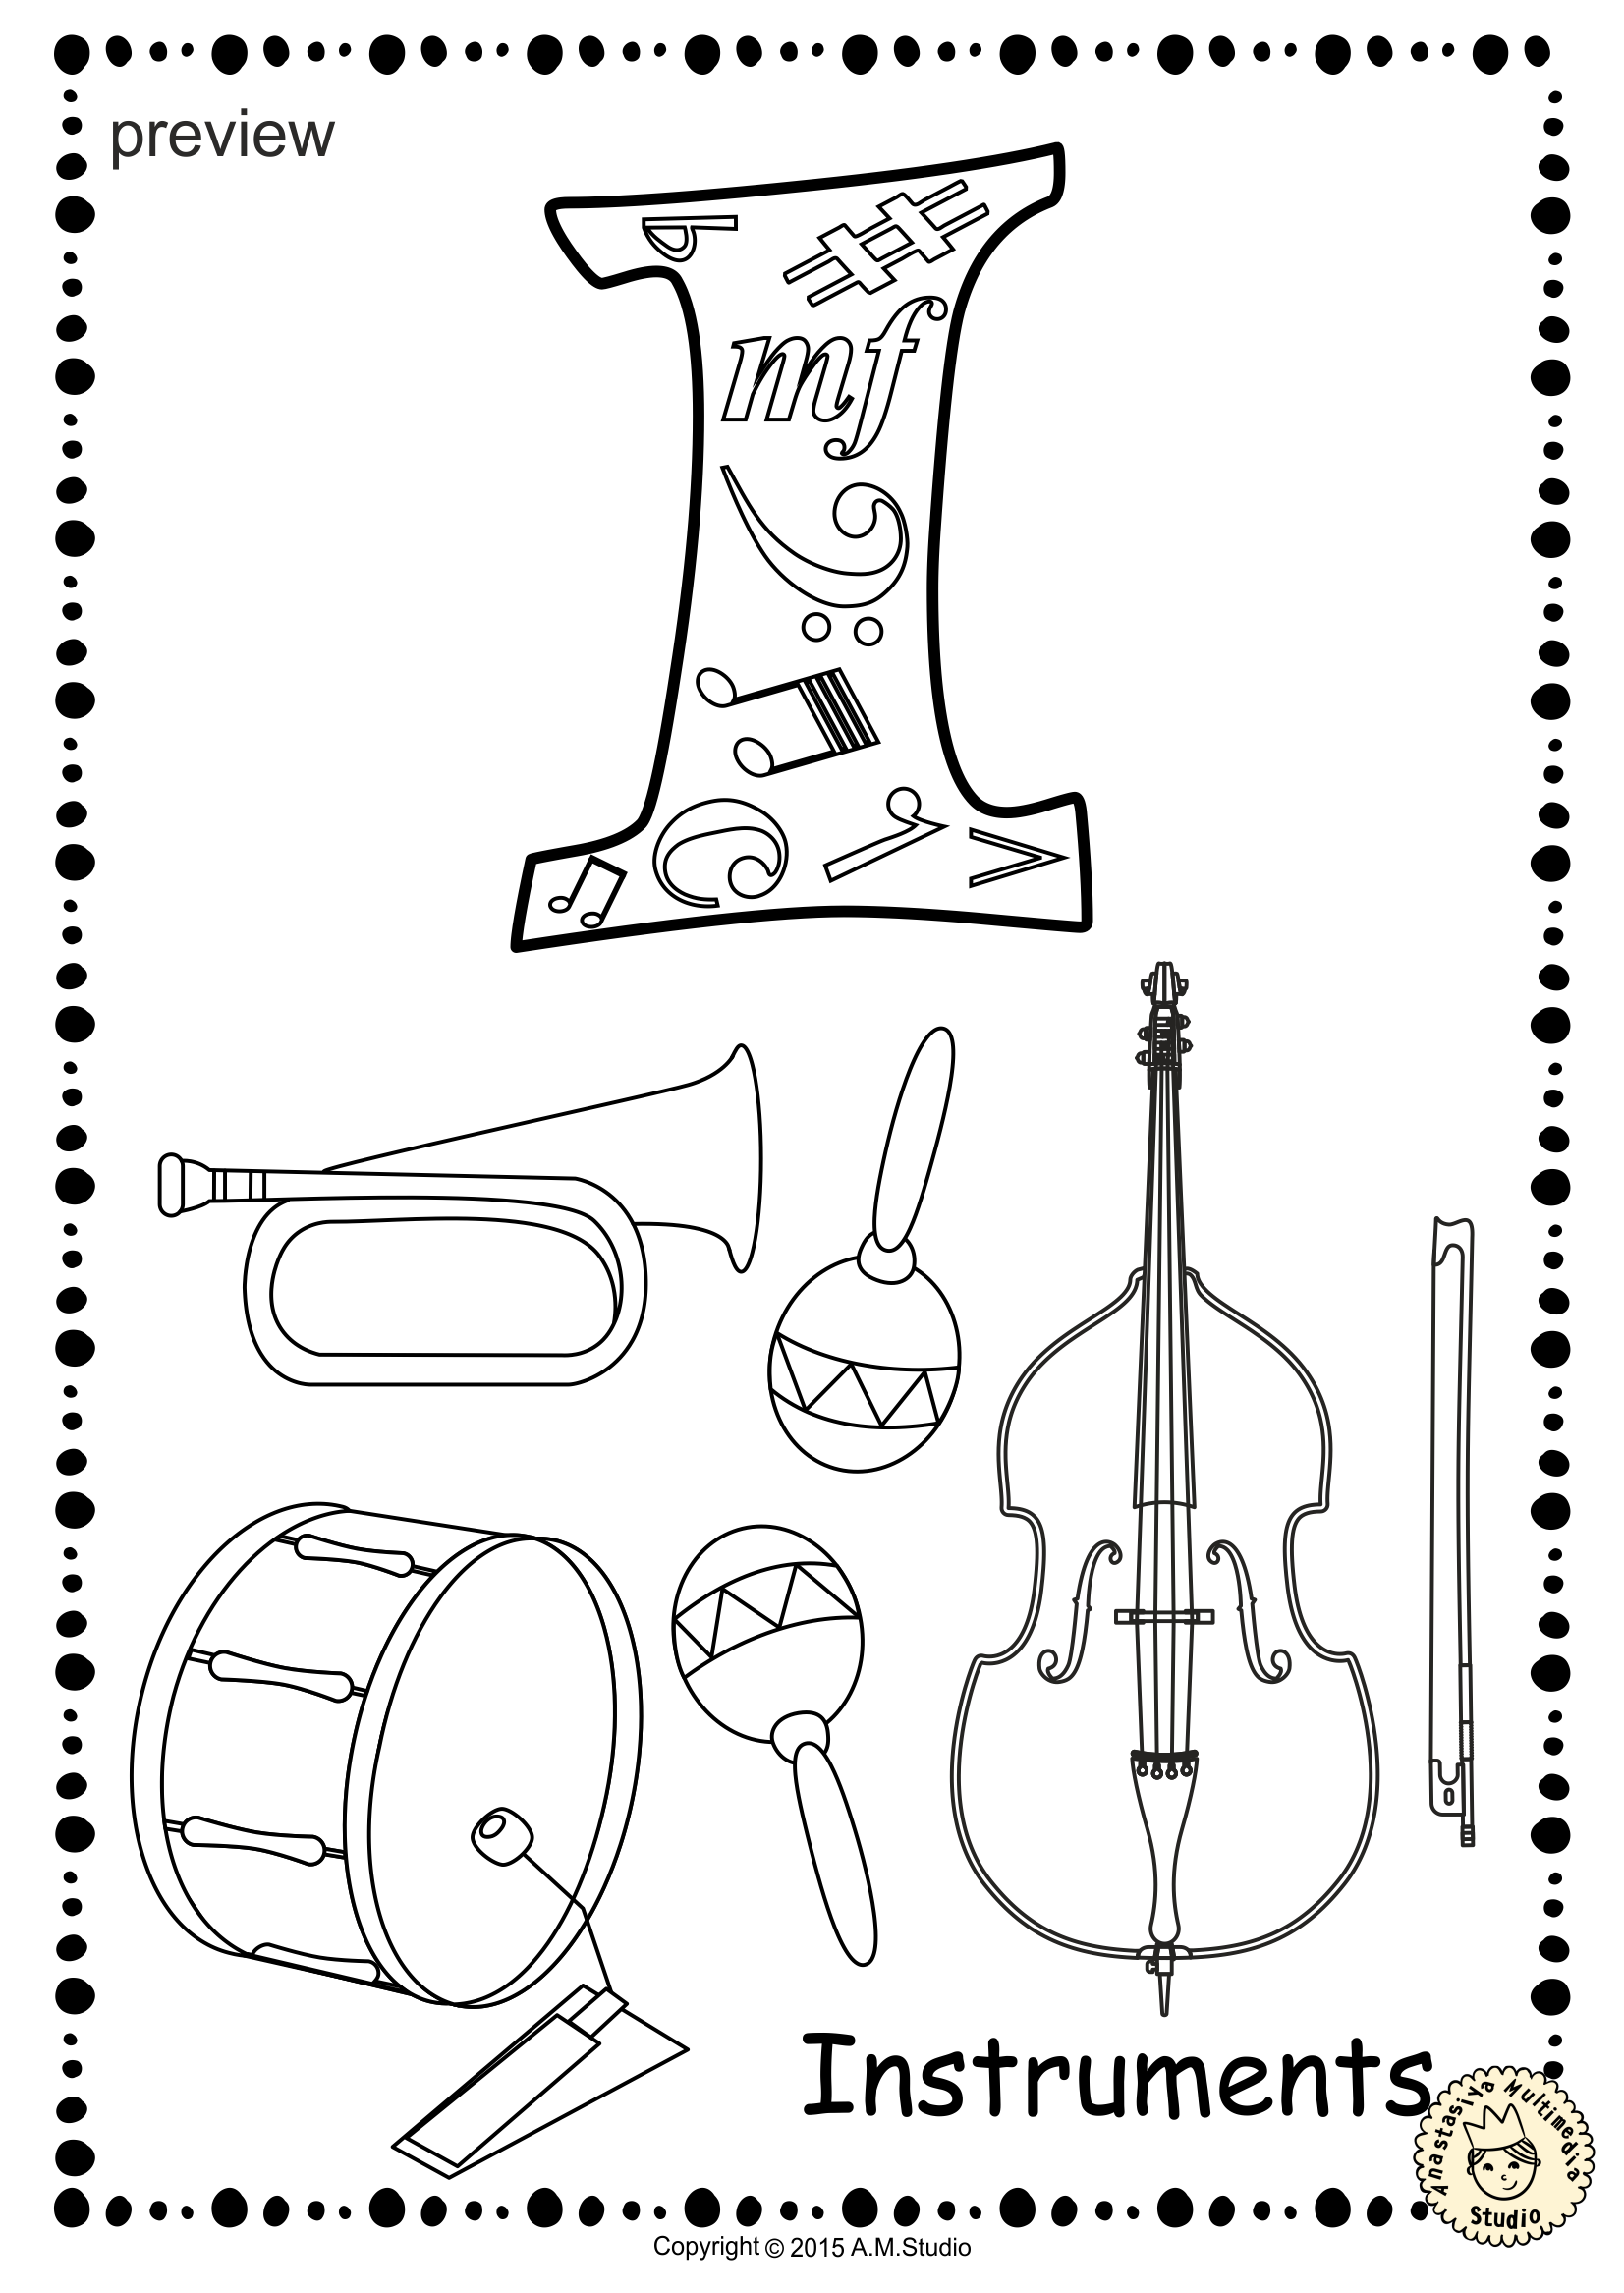 this file (in pdf form) contains 26 musical instrument coloring